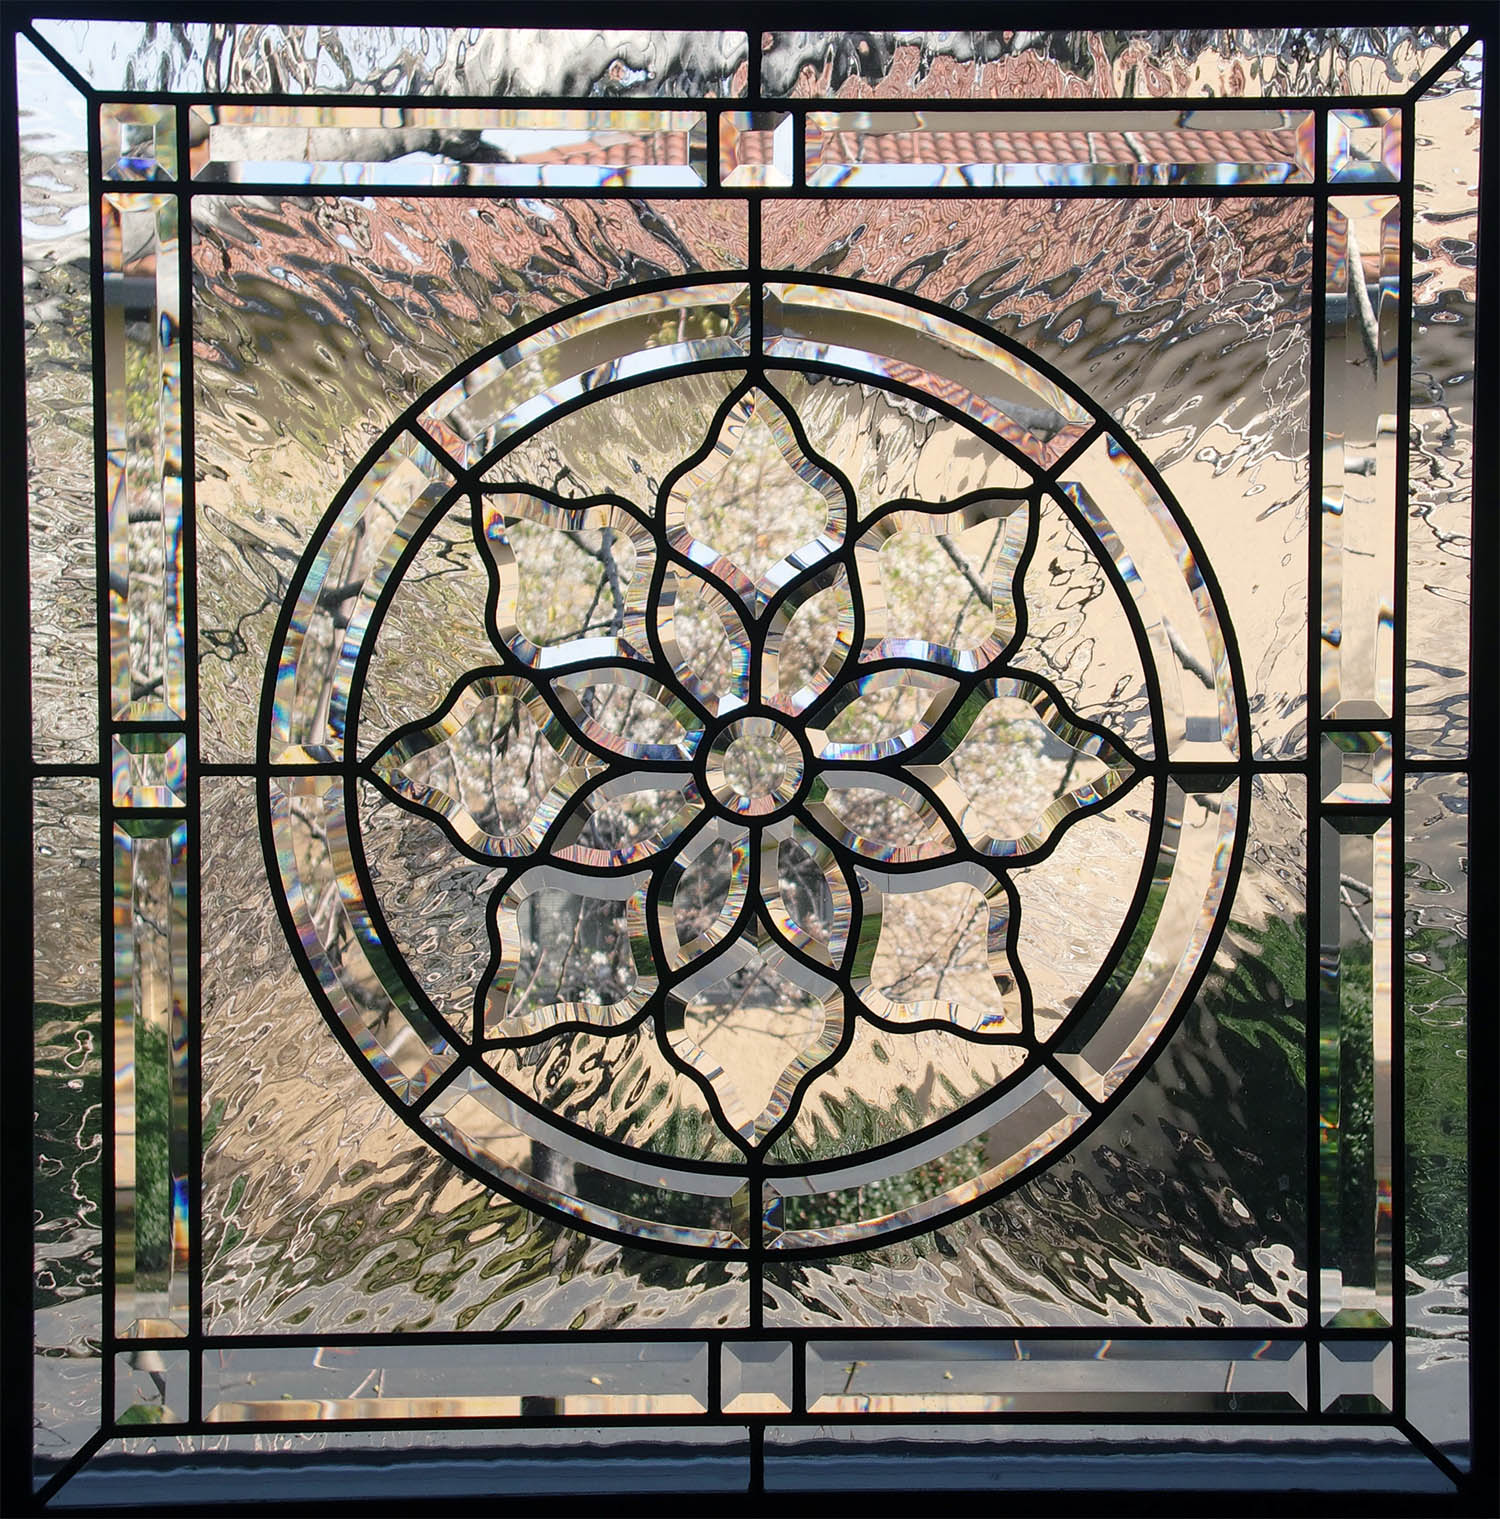 bevel cluster flower pencil bevel water glass beveled leaded glass stained glass window palo alto atherton california san francisco.jpg